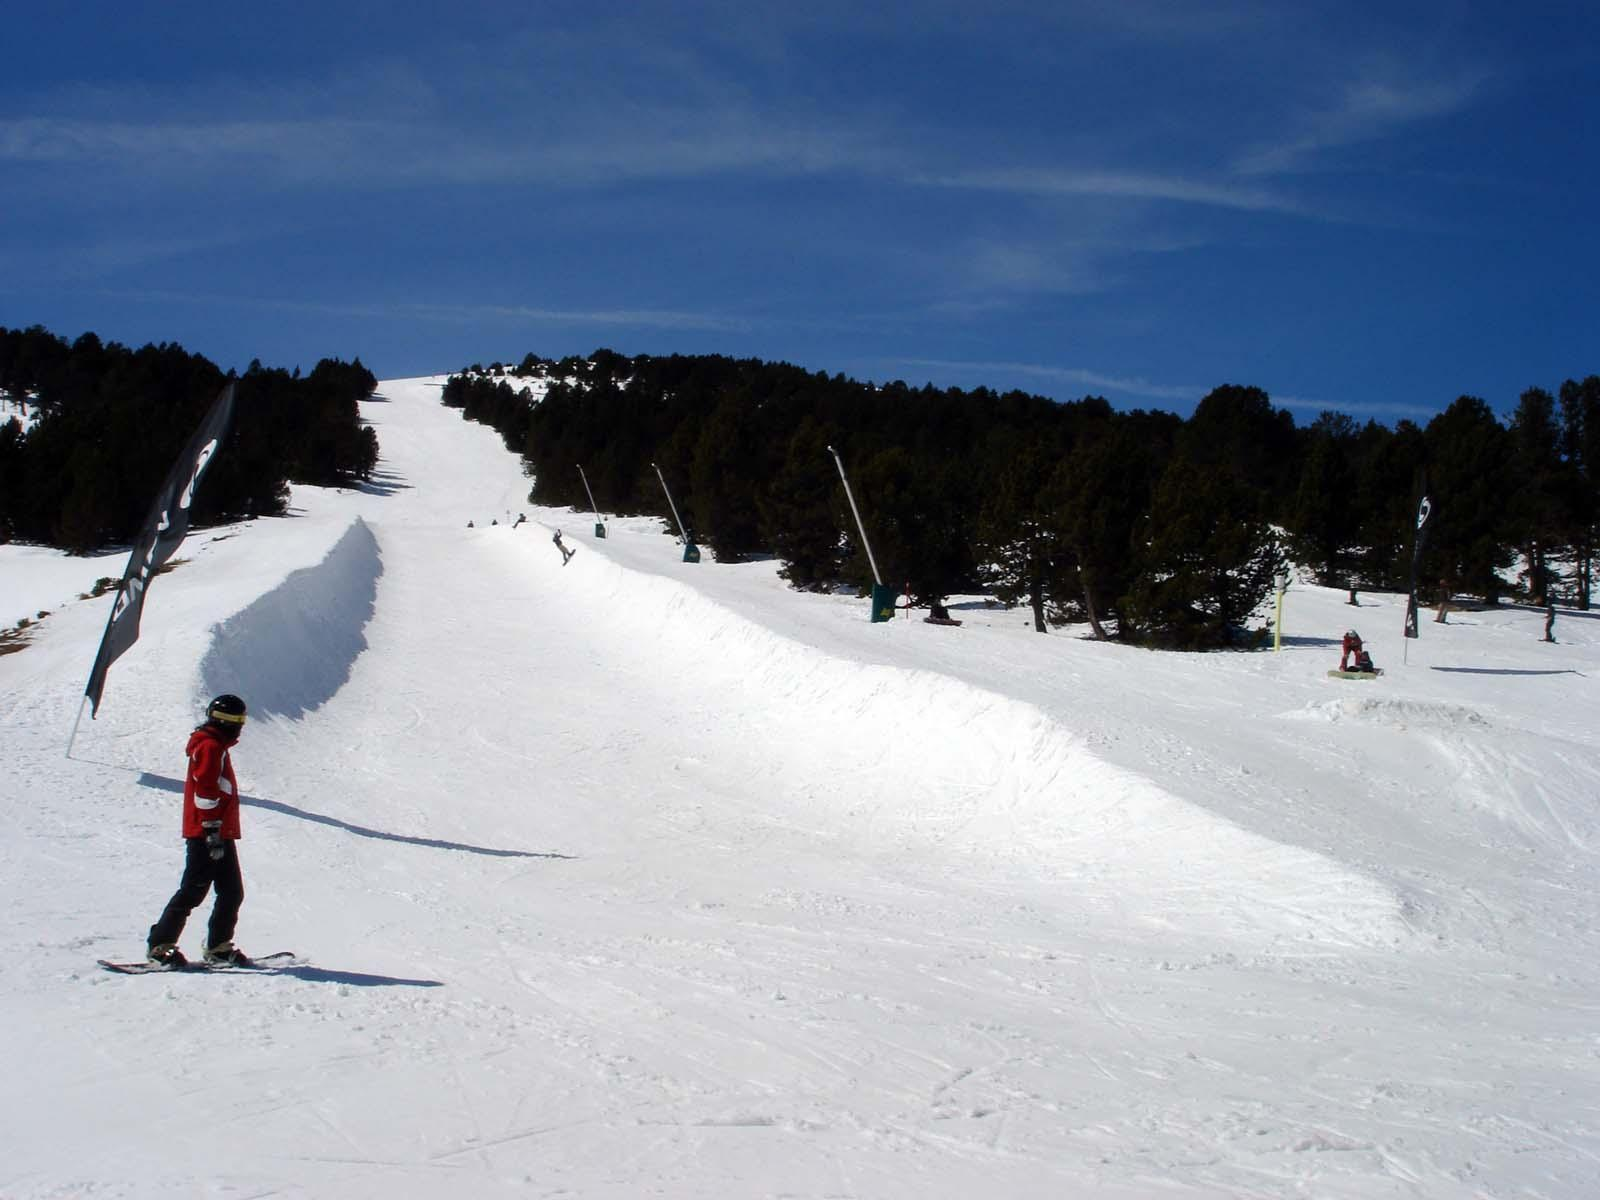 Domaine skiable LES ANGLES_Les Angles